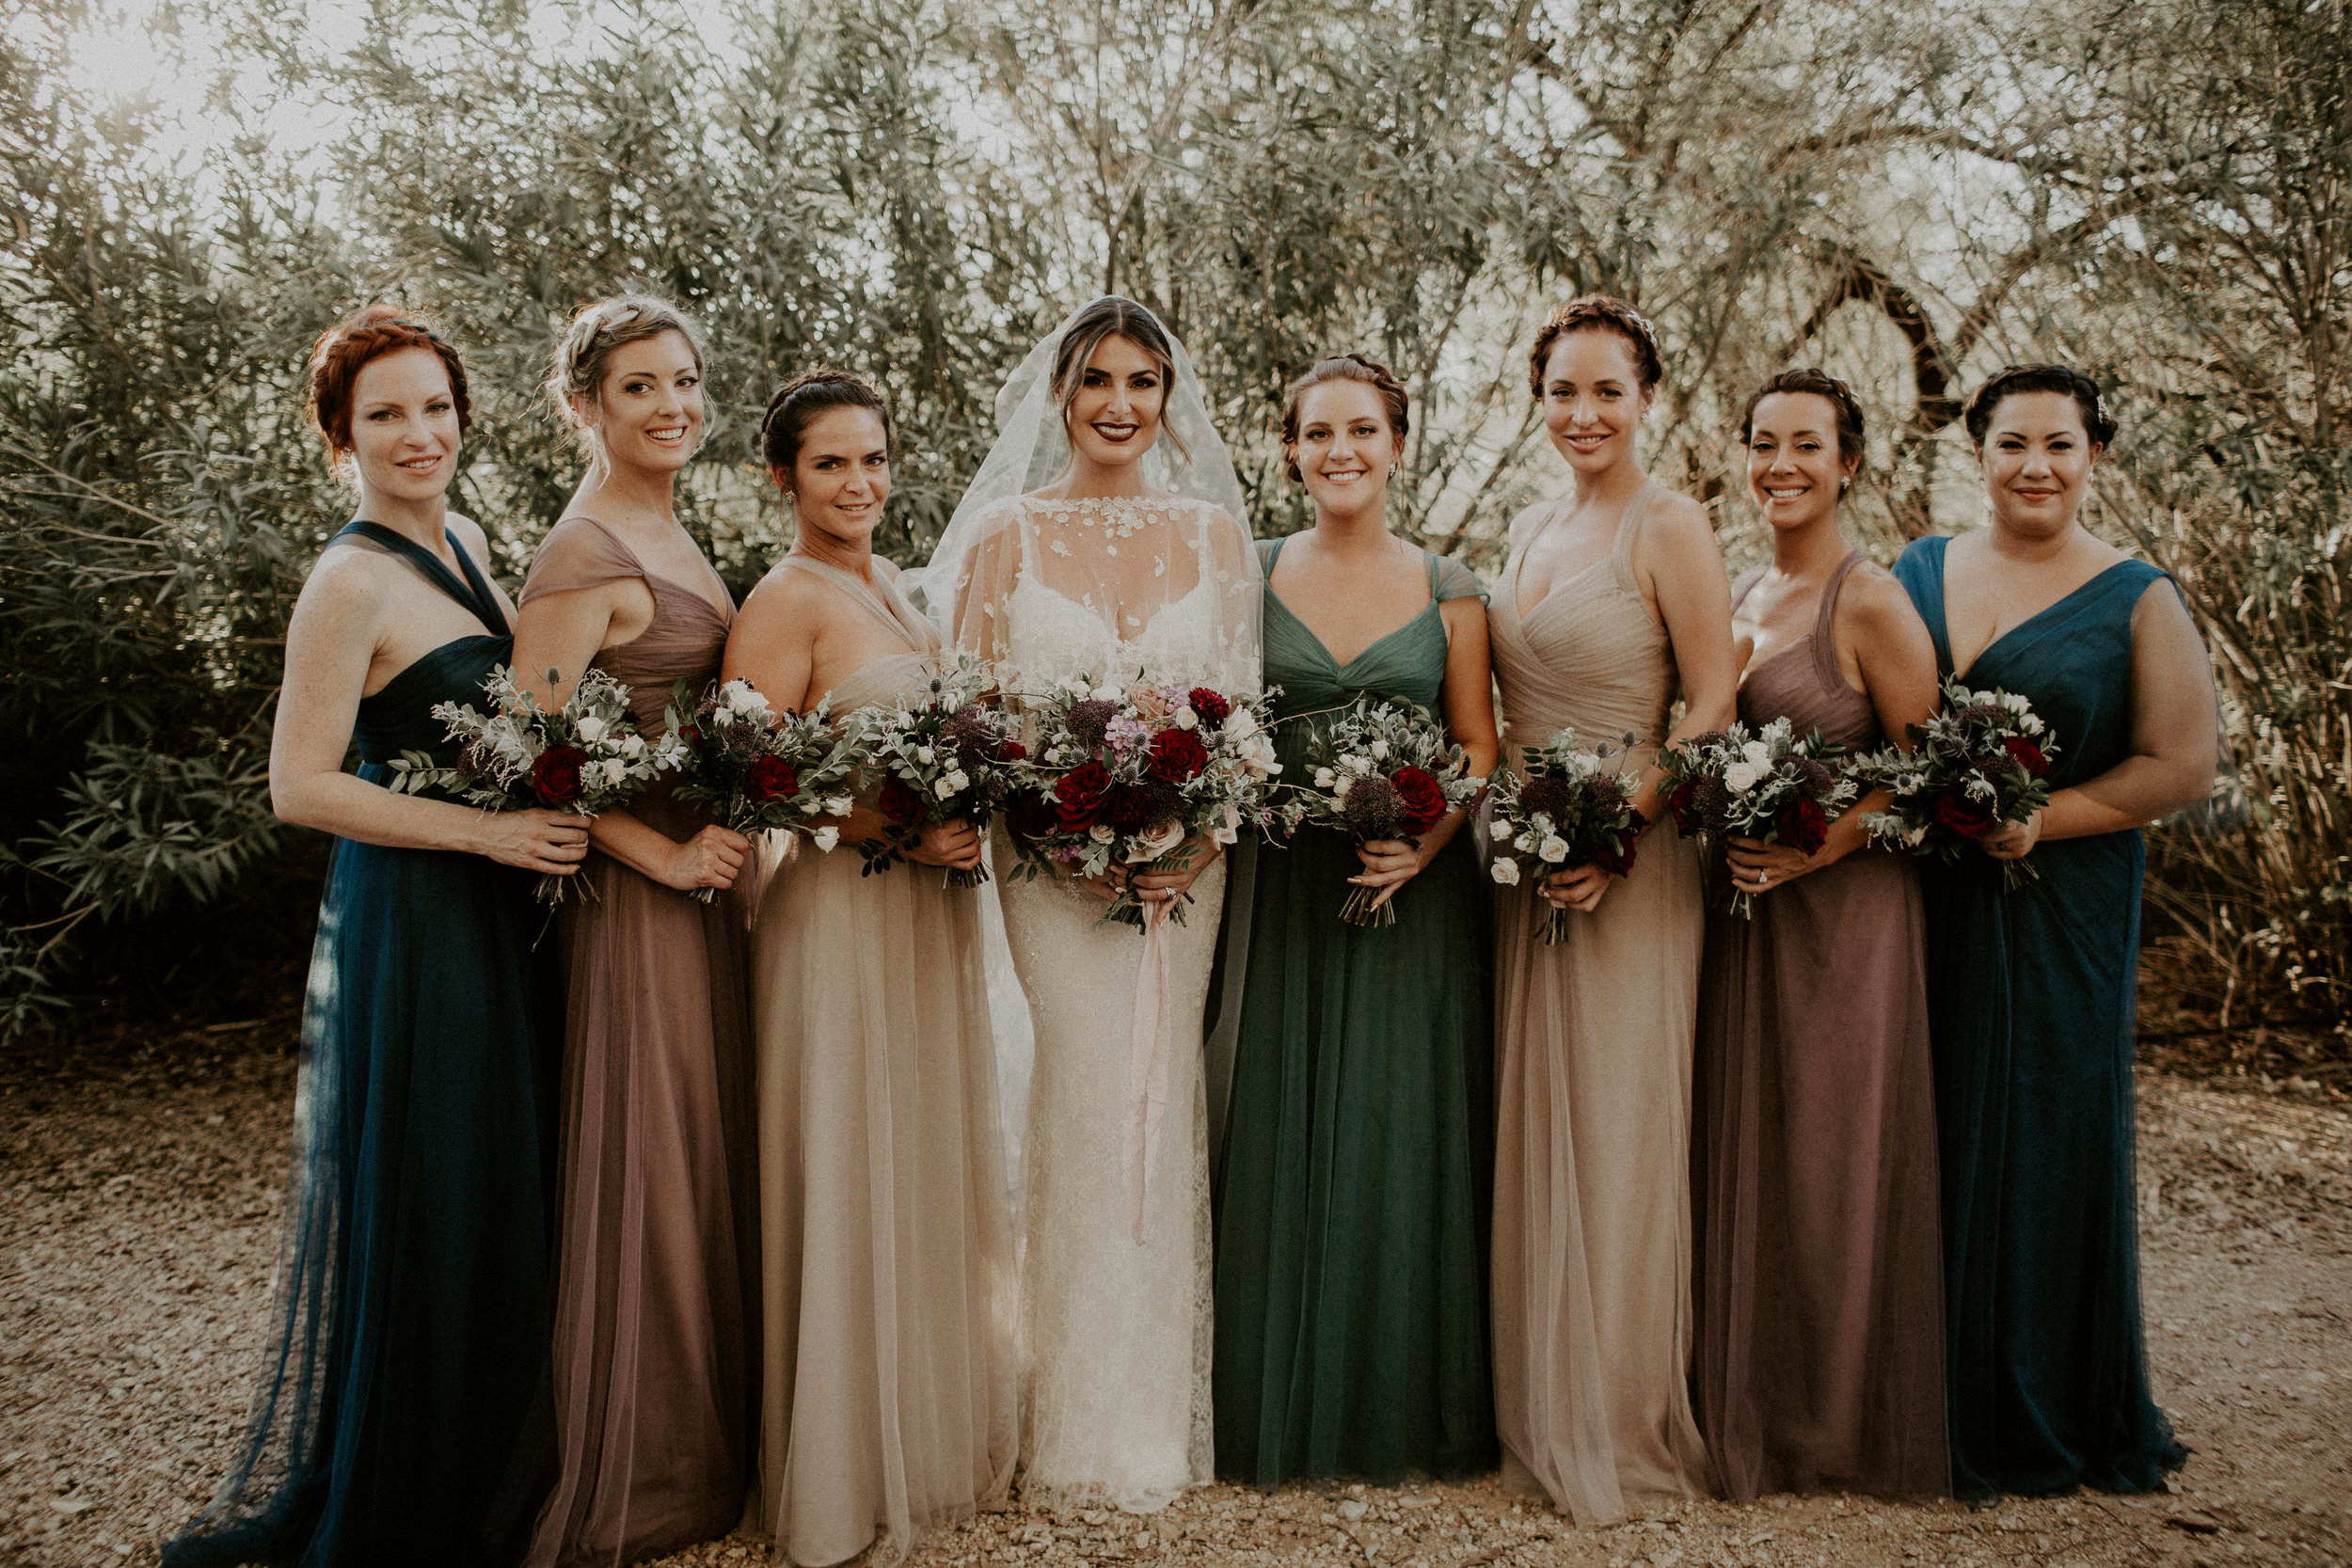 Moody Desert Wedding - Bridesmaids in Muted Toned Gowns